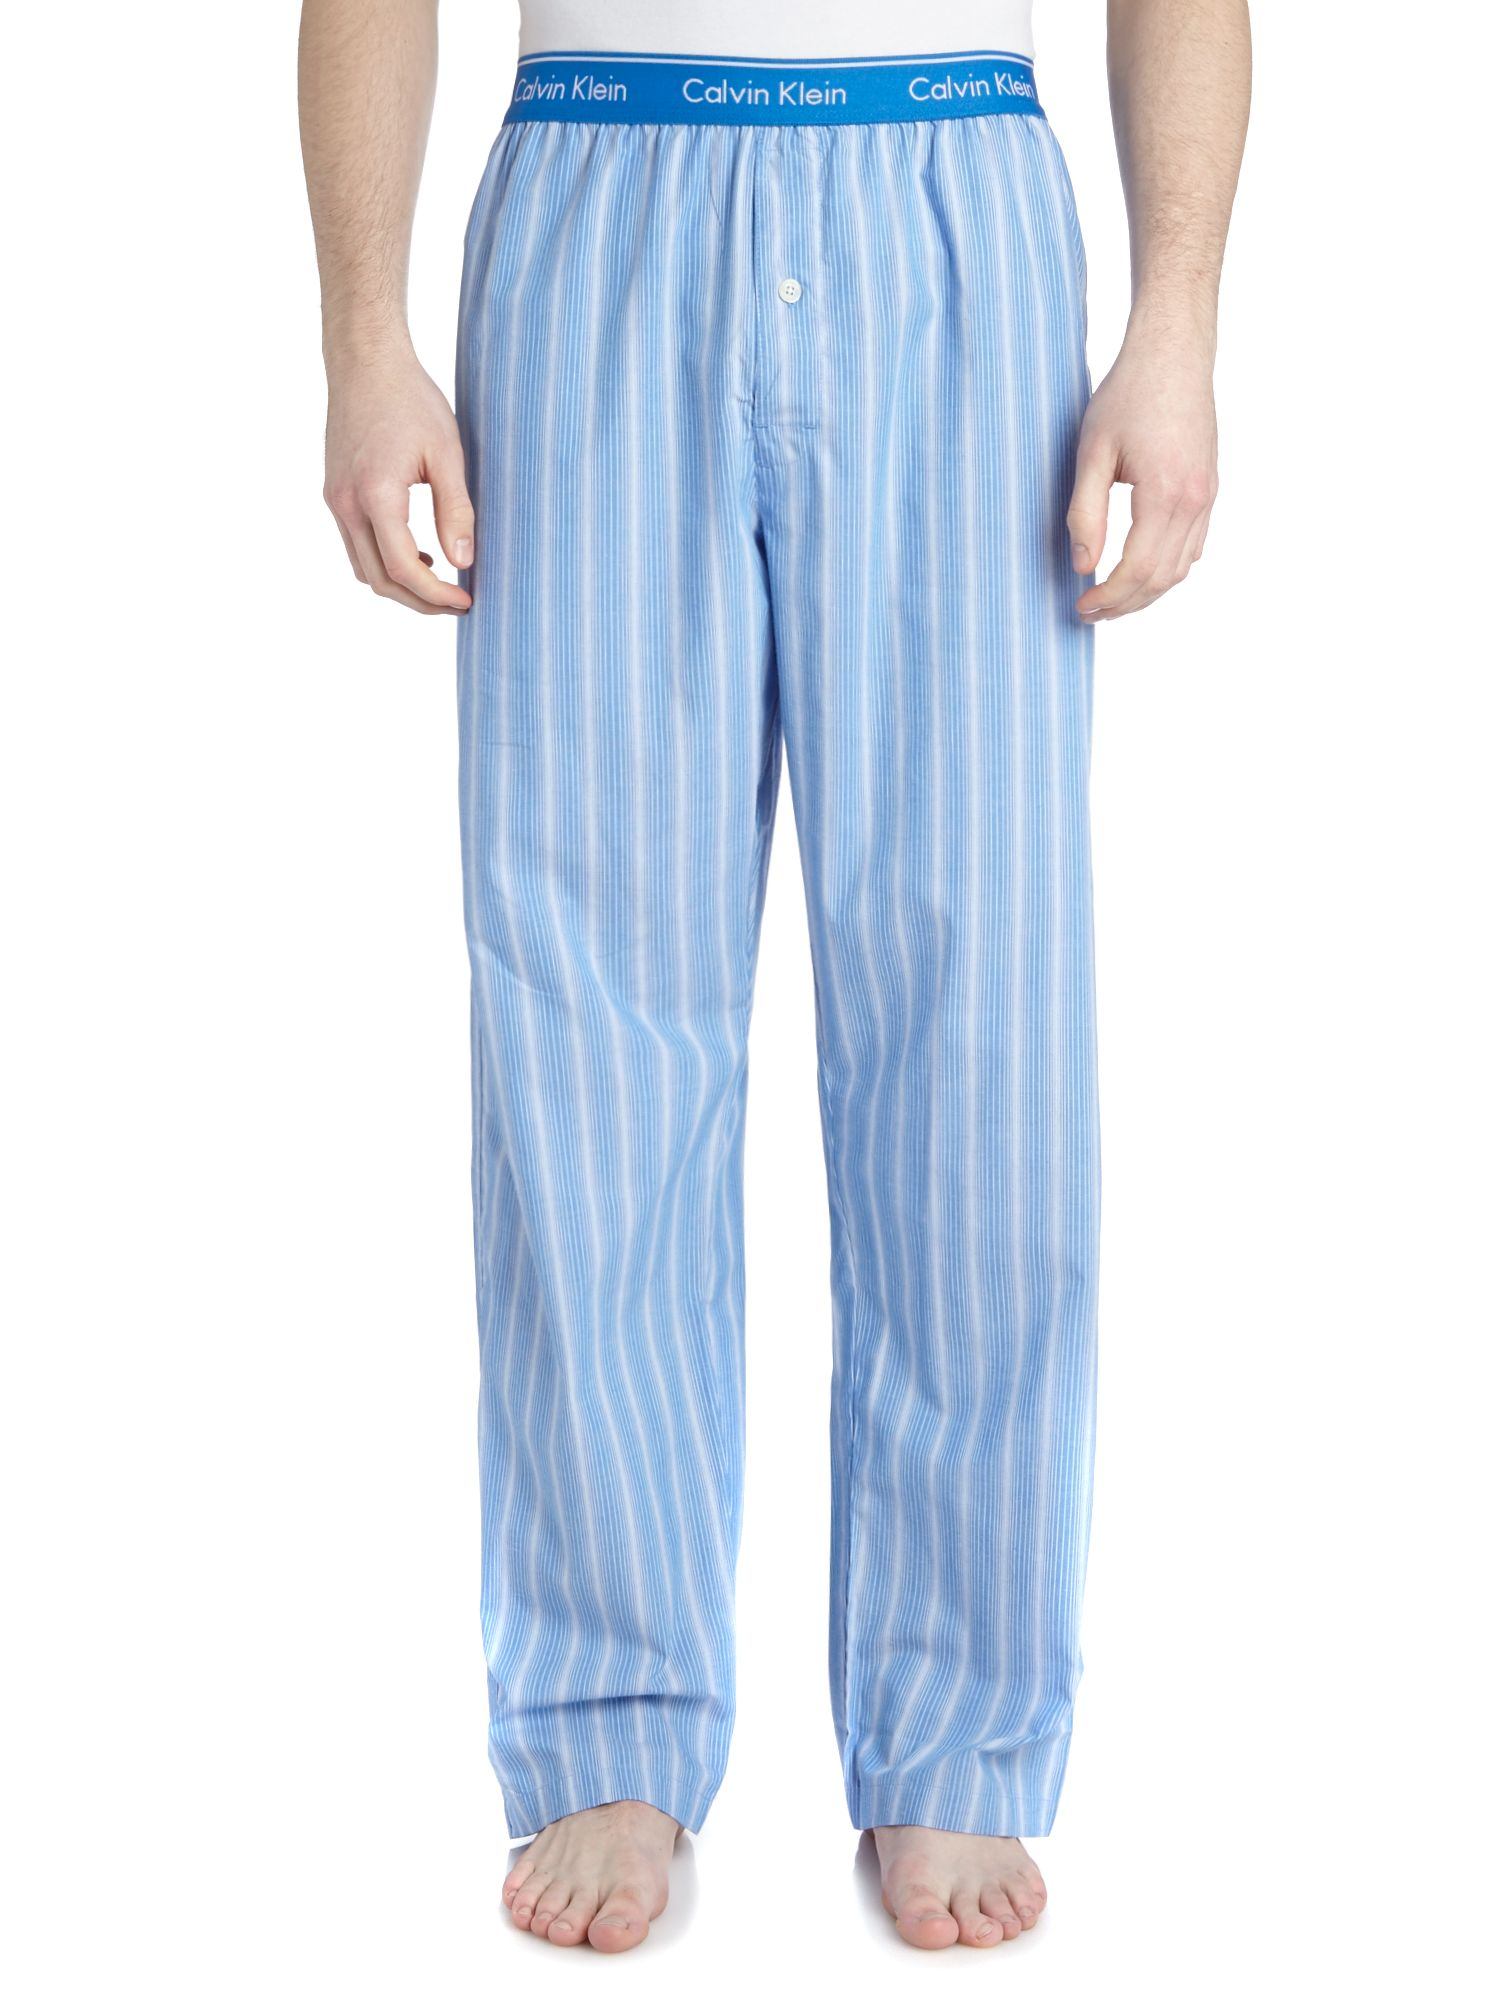 Optical stripe pant